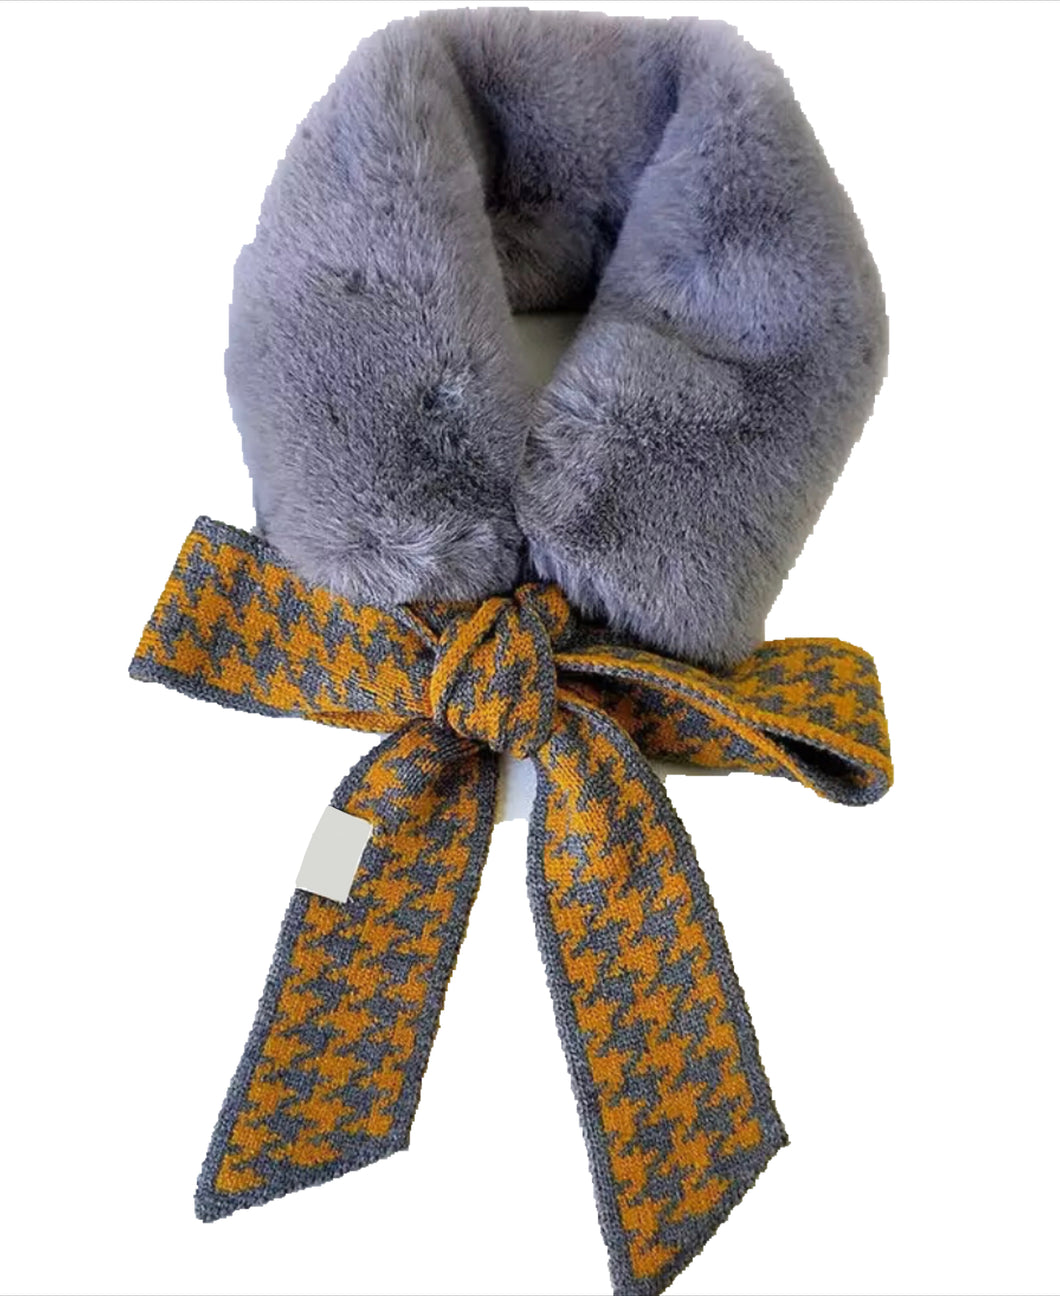 SOLD OUT - NEW Amelia faux fur scarf - Grey/Yellow